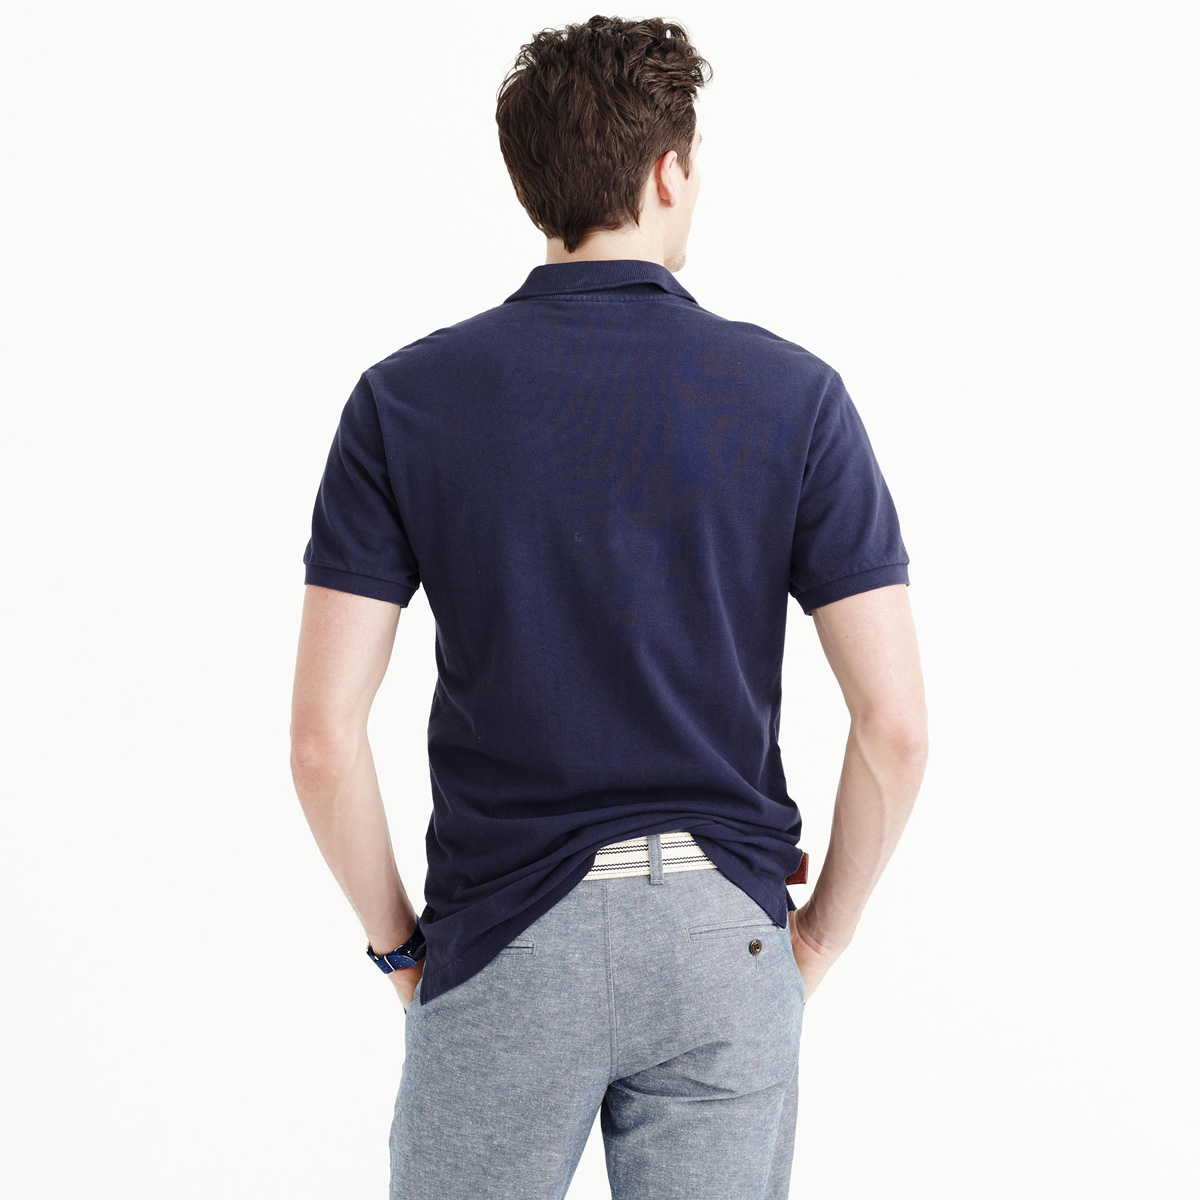 ao-polo-lacoste-slim-fit-174